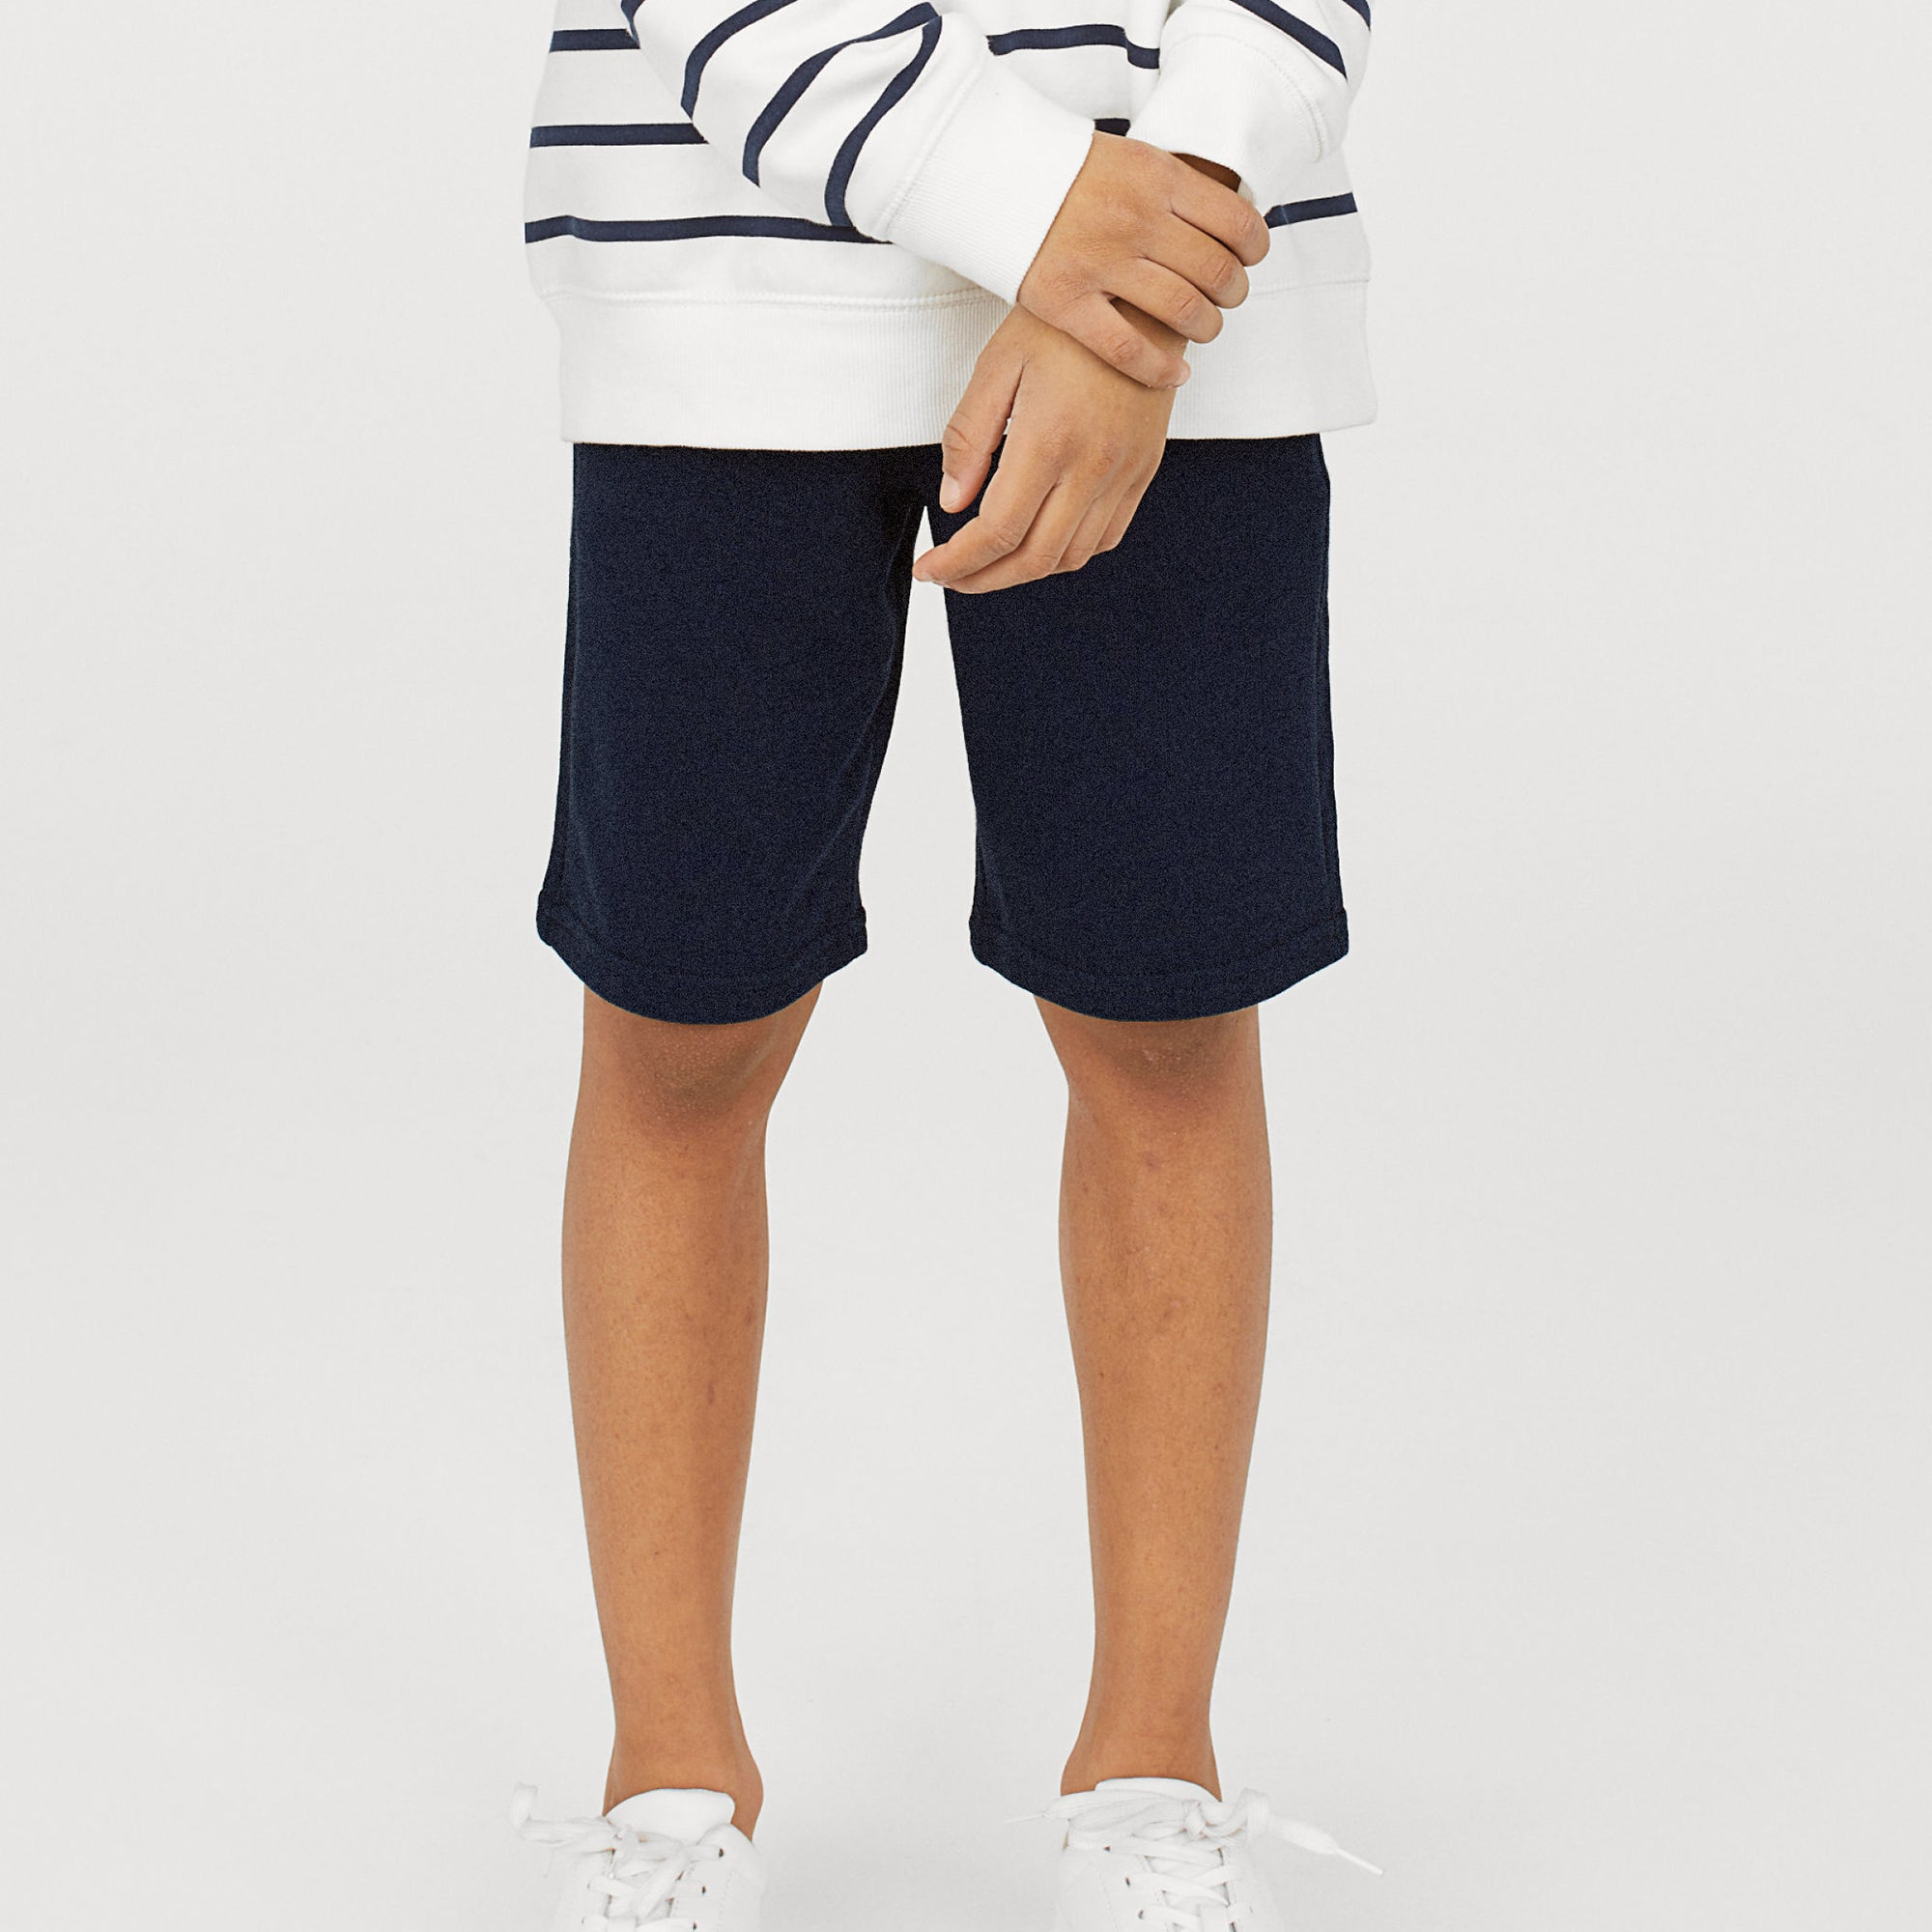 brandsego - Vivance Single Jersey Summer Short For Boys-NA8638